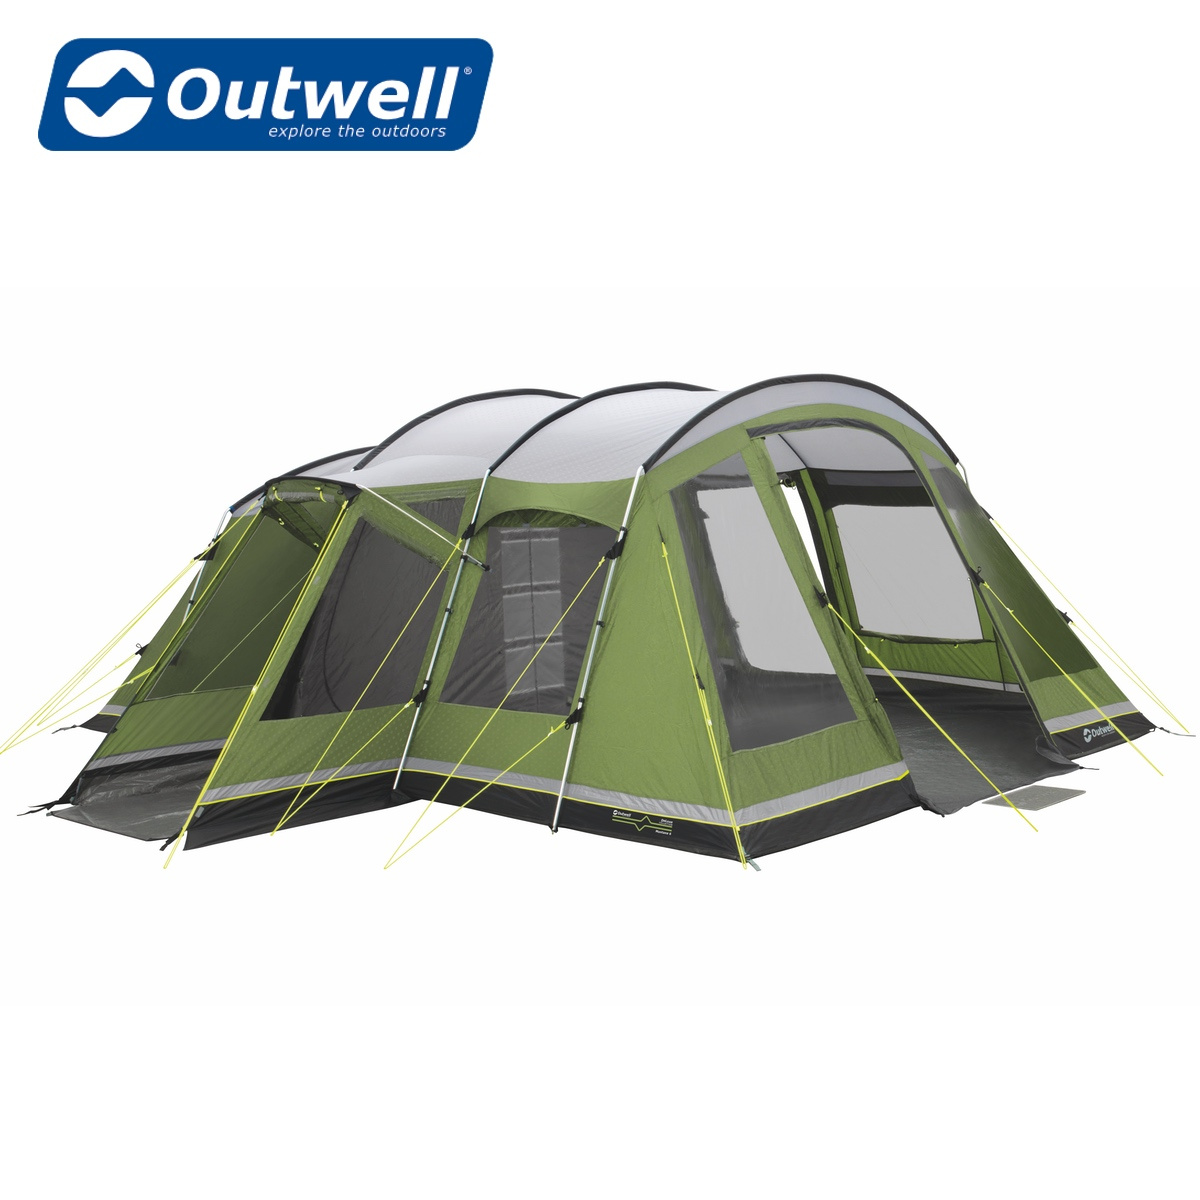 Outwell Montana 6 Tent - 2018 Model  sc 1 st  Purely Outdoors & Outwell Montana 6 Tent | Purely Outdoors